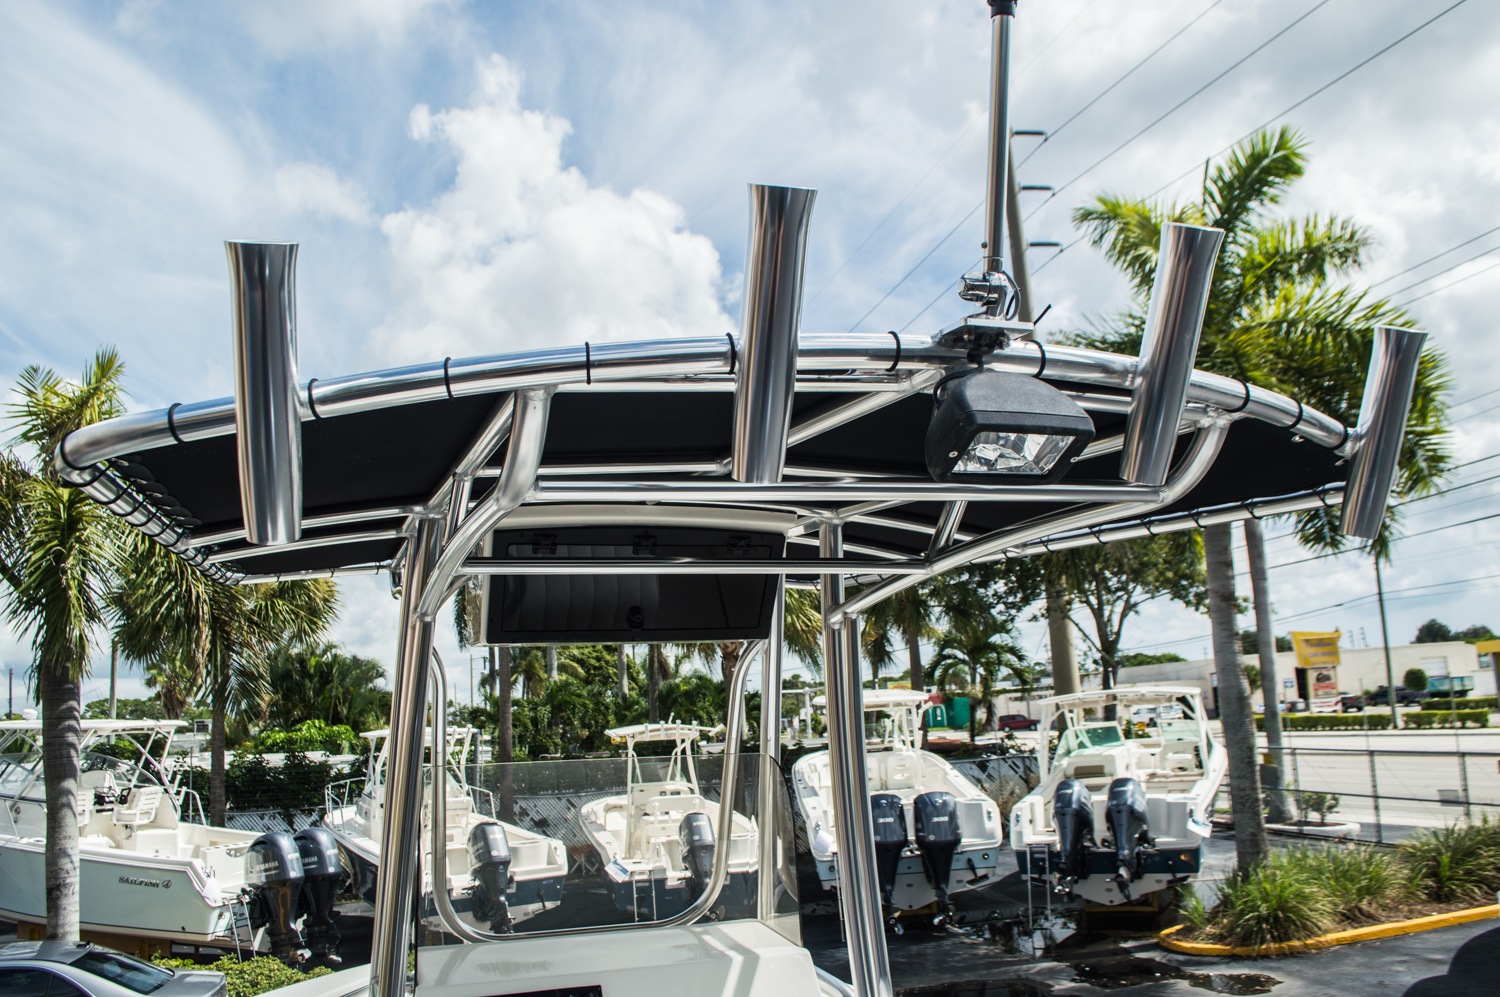 Thumbnail 10 for New 2016 Bulls Bay 200 CC Center Console boat for sale in Vero Beach, FL